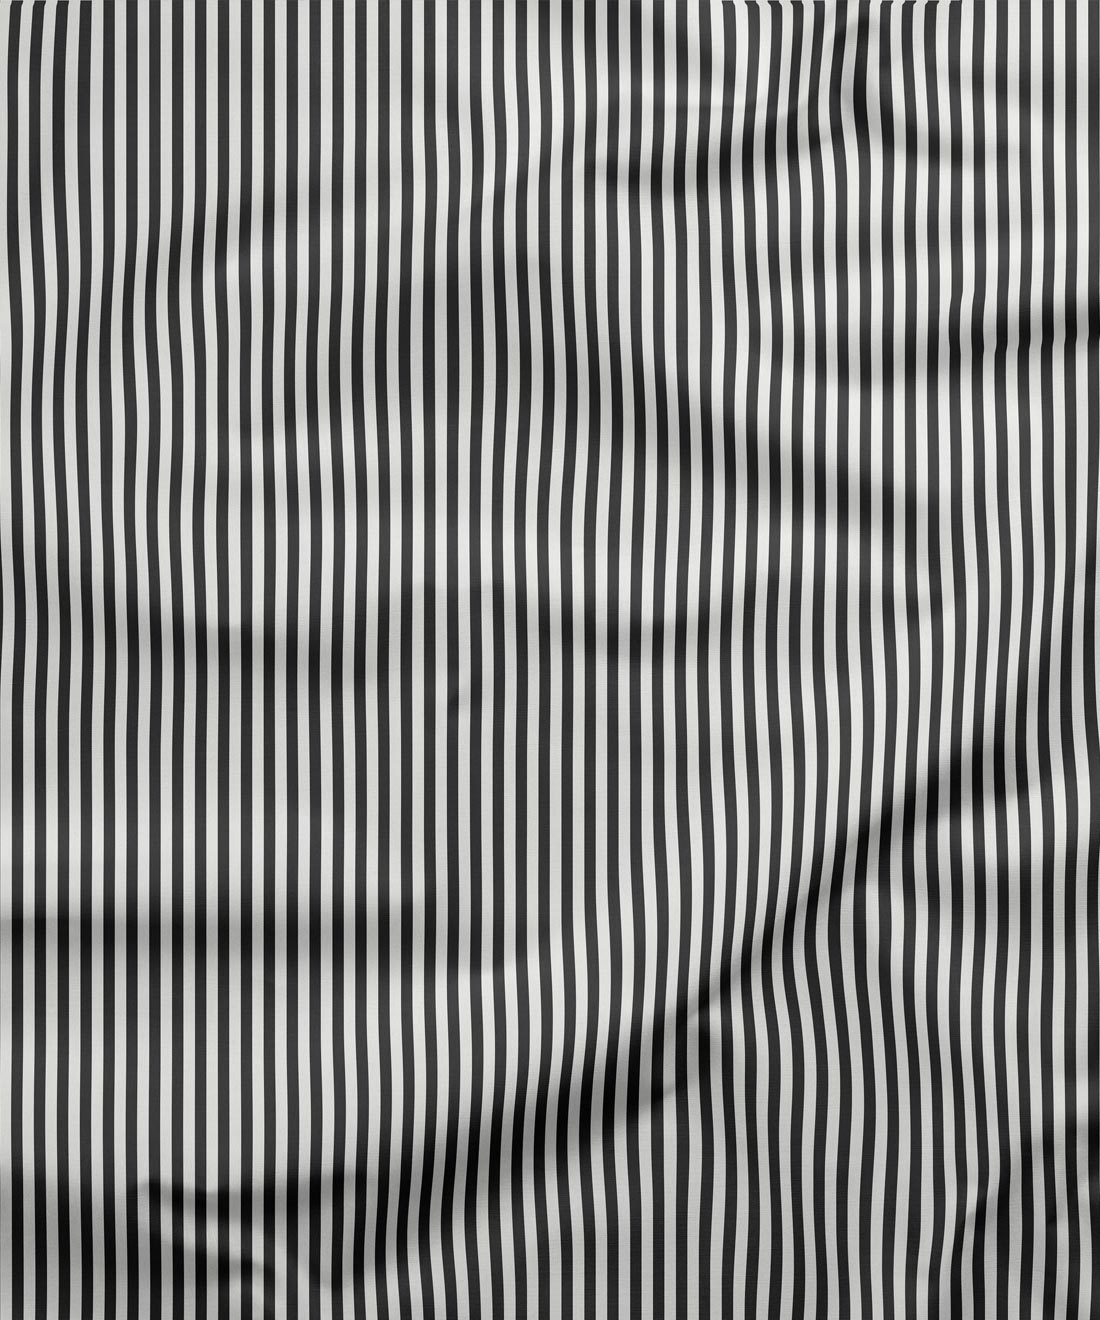 Candy Stripe Charcoal Fabric